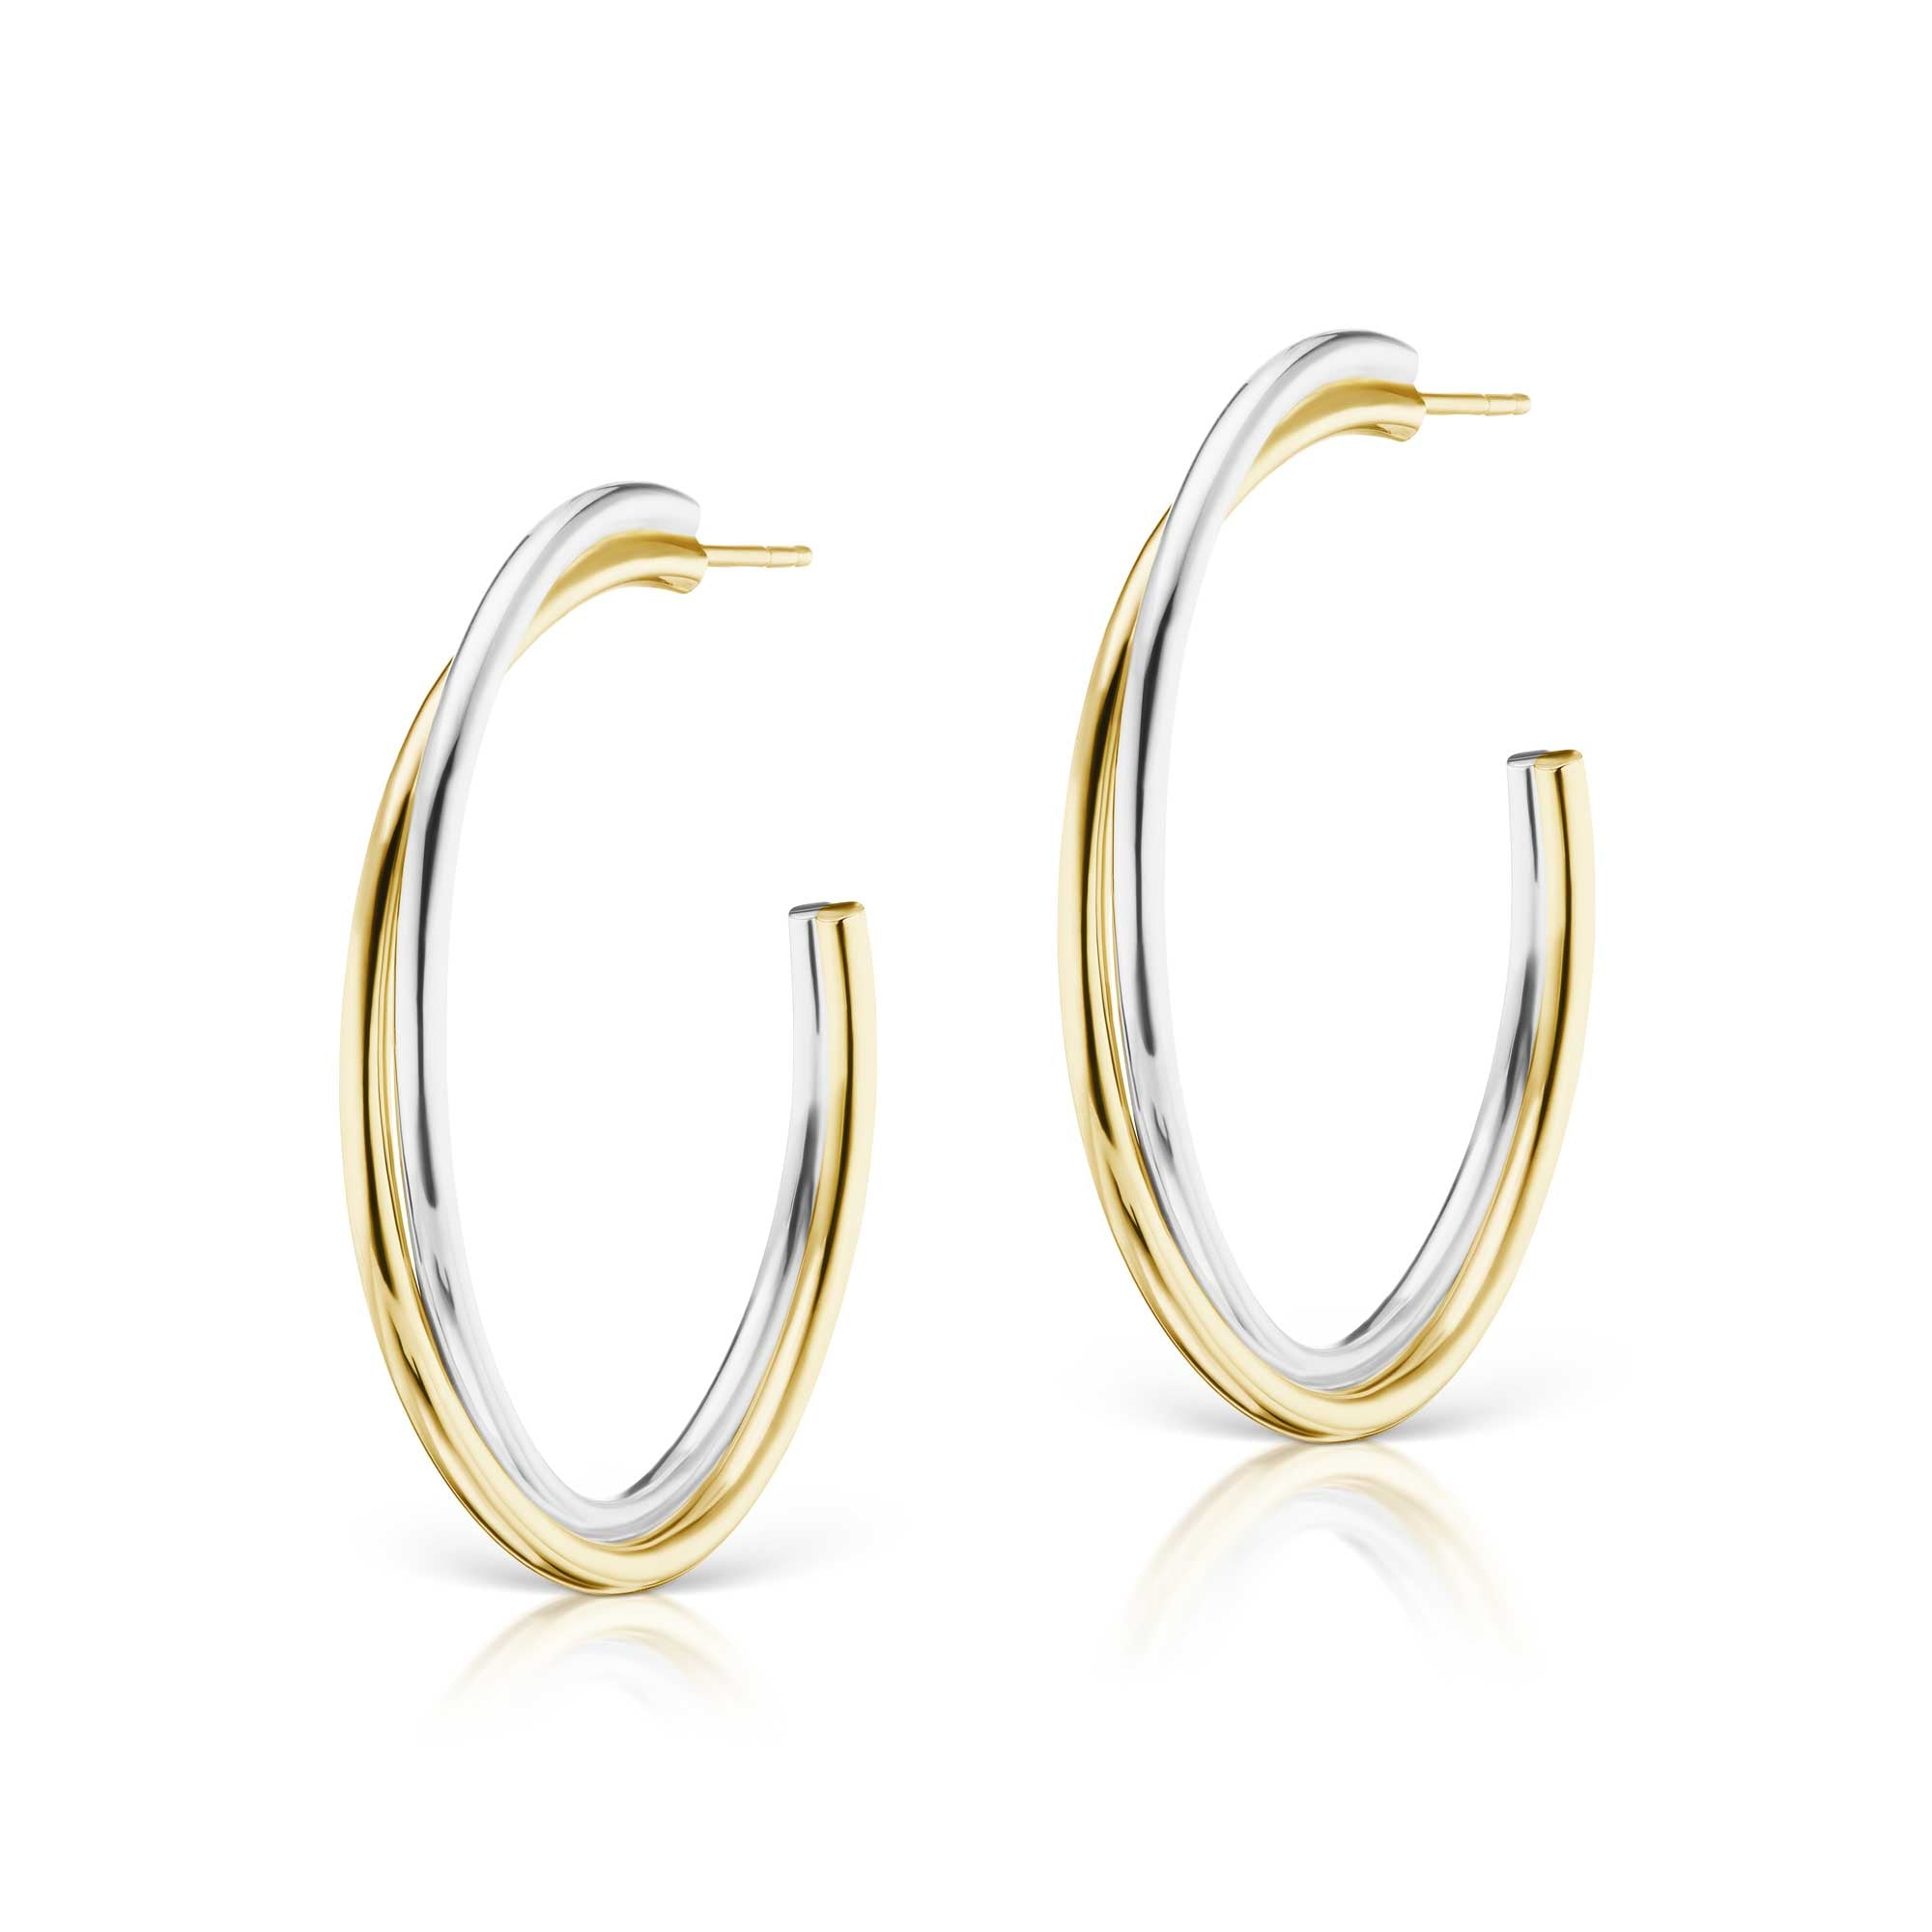 The Mixed Metal Layered Statement Hoop